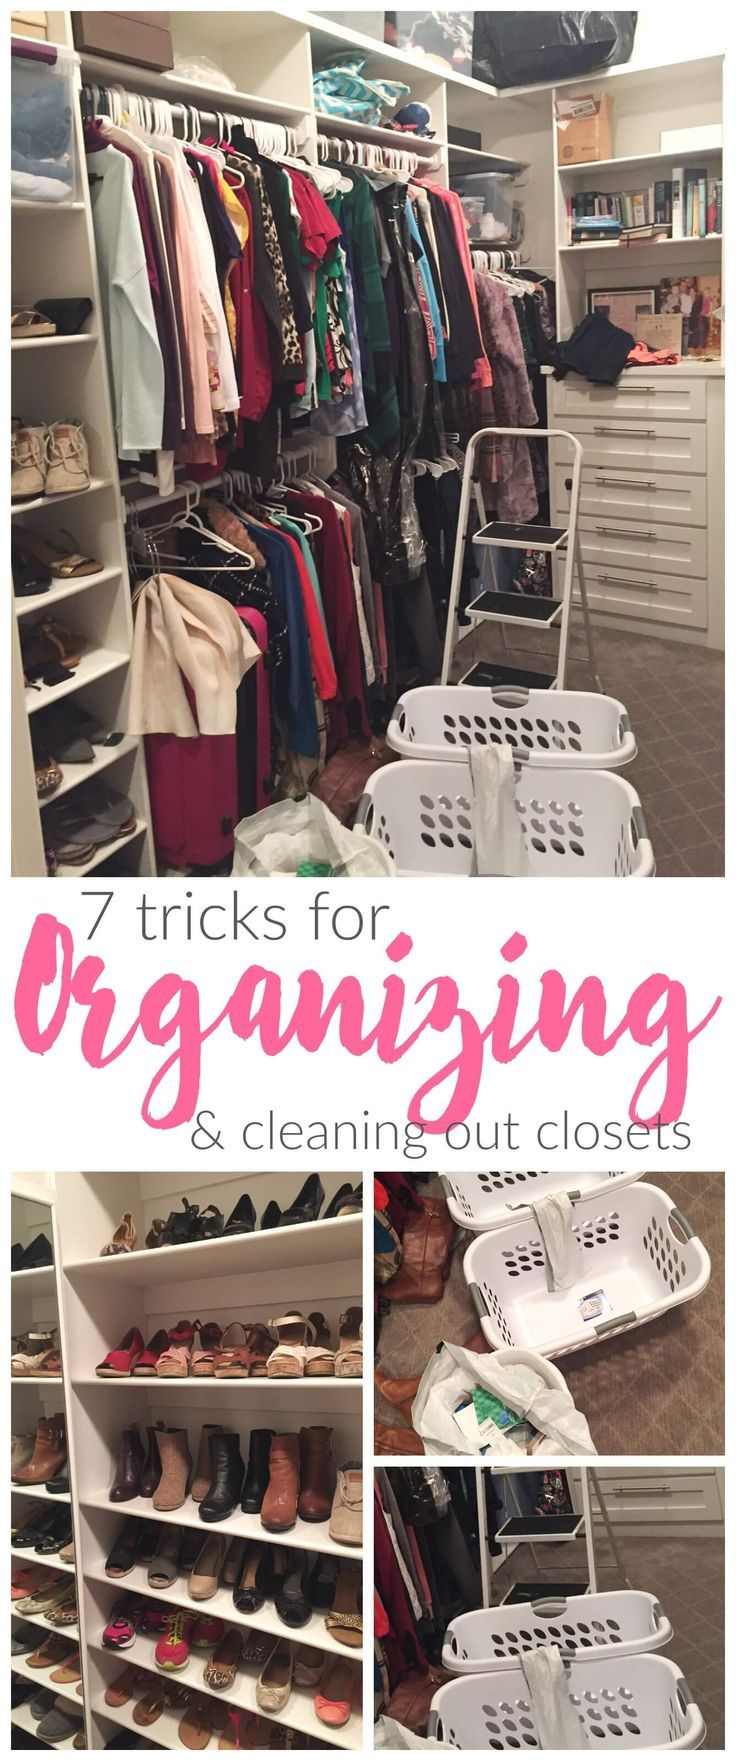 Best 25 cleaning out closet ideas on pinterest what is - Cleaning and organizing tips for bedroom ...